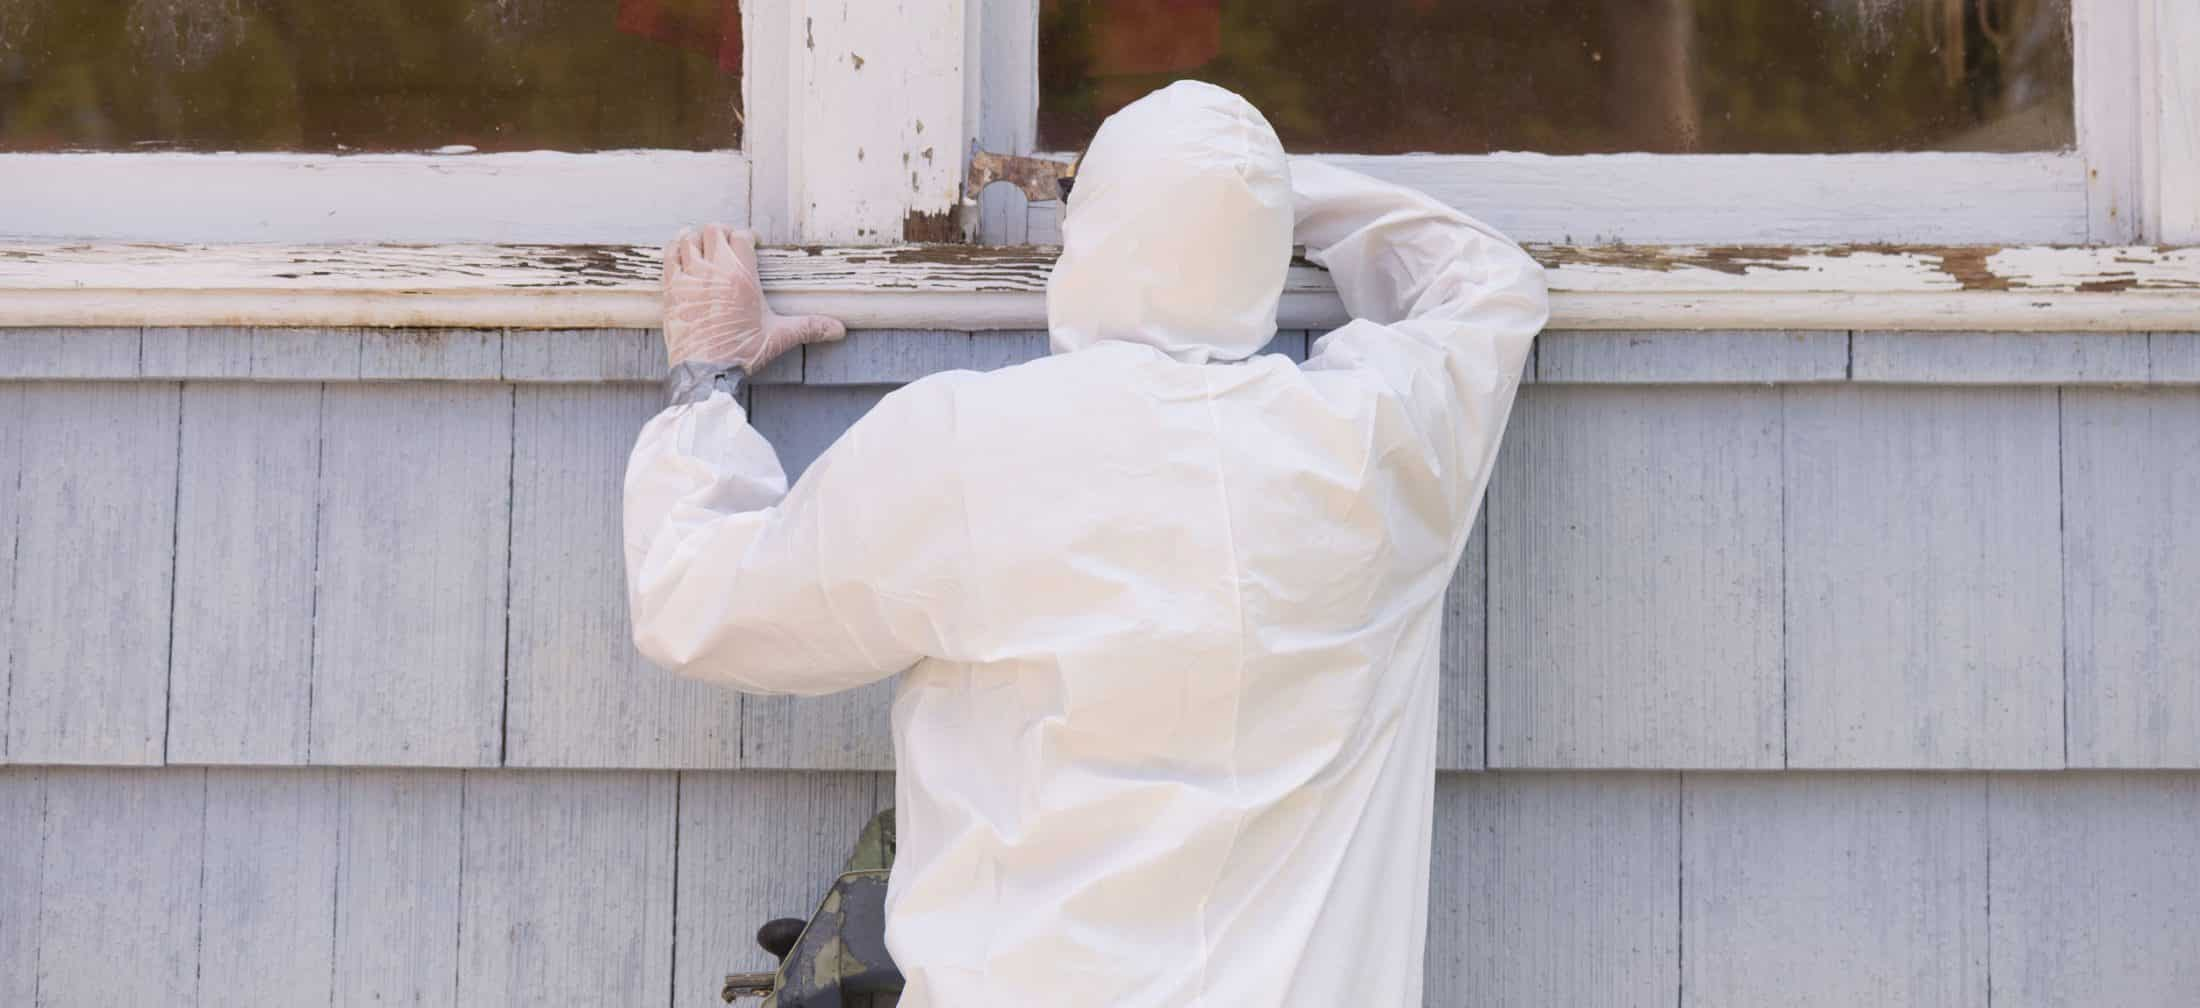 Hazardous materials removal specialist removing lead paint from a window sill